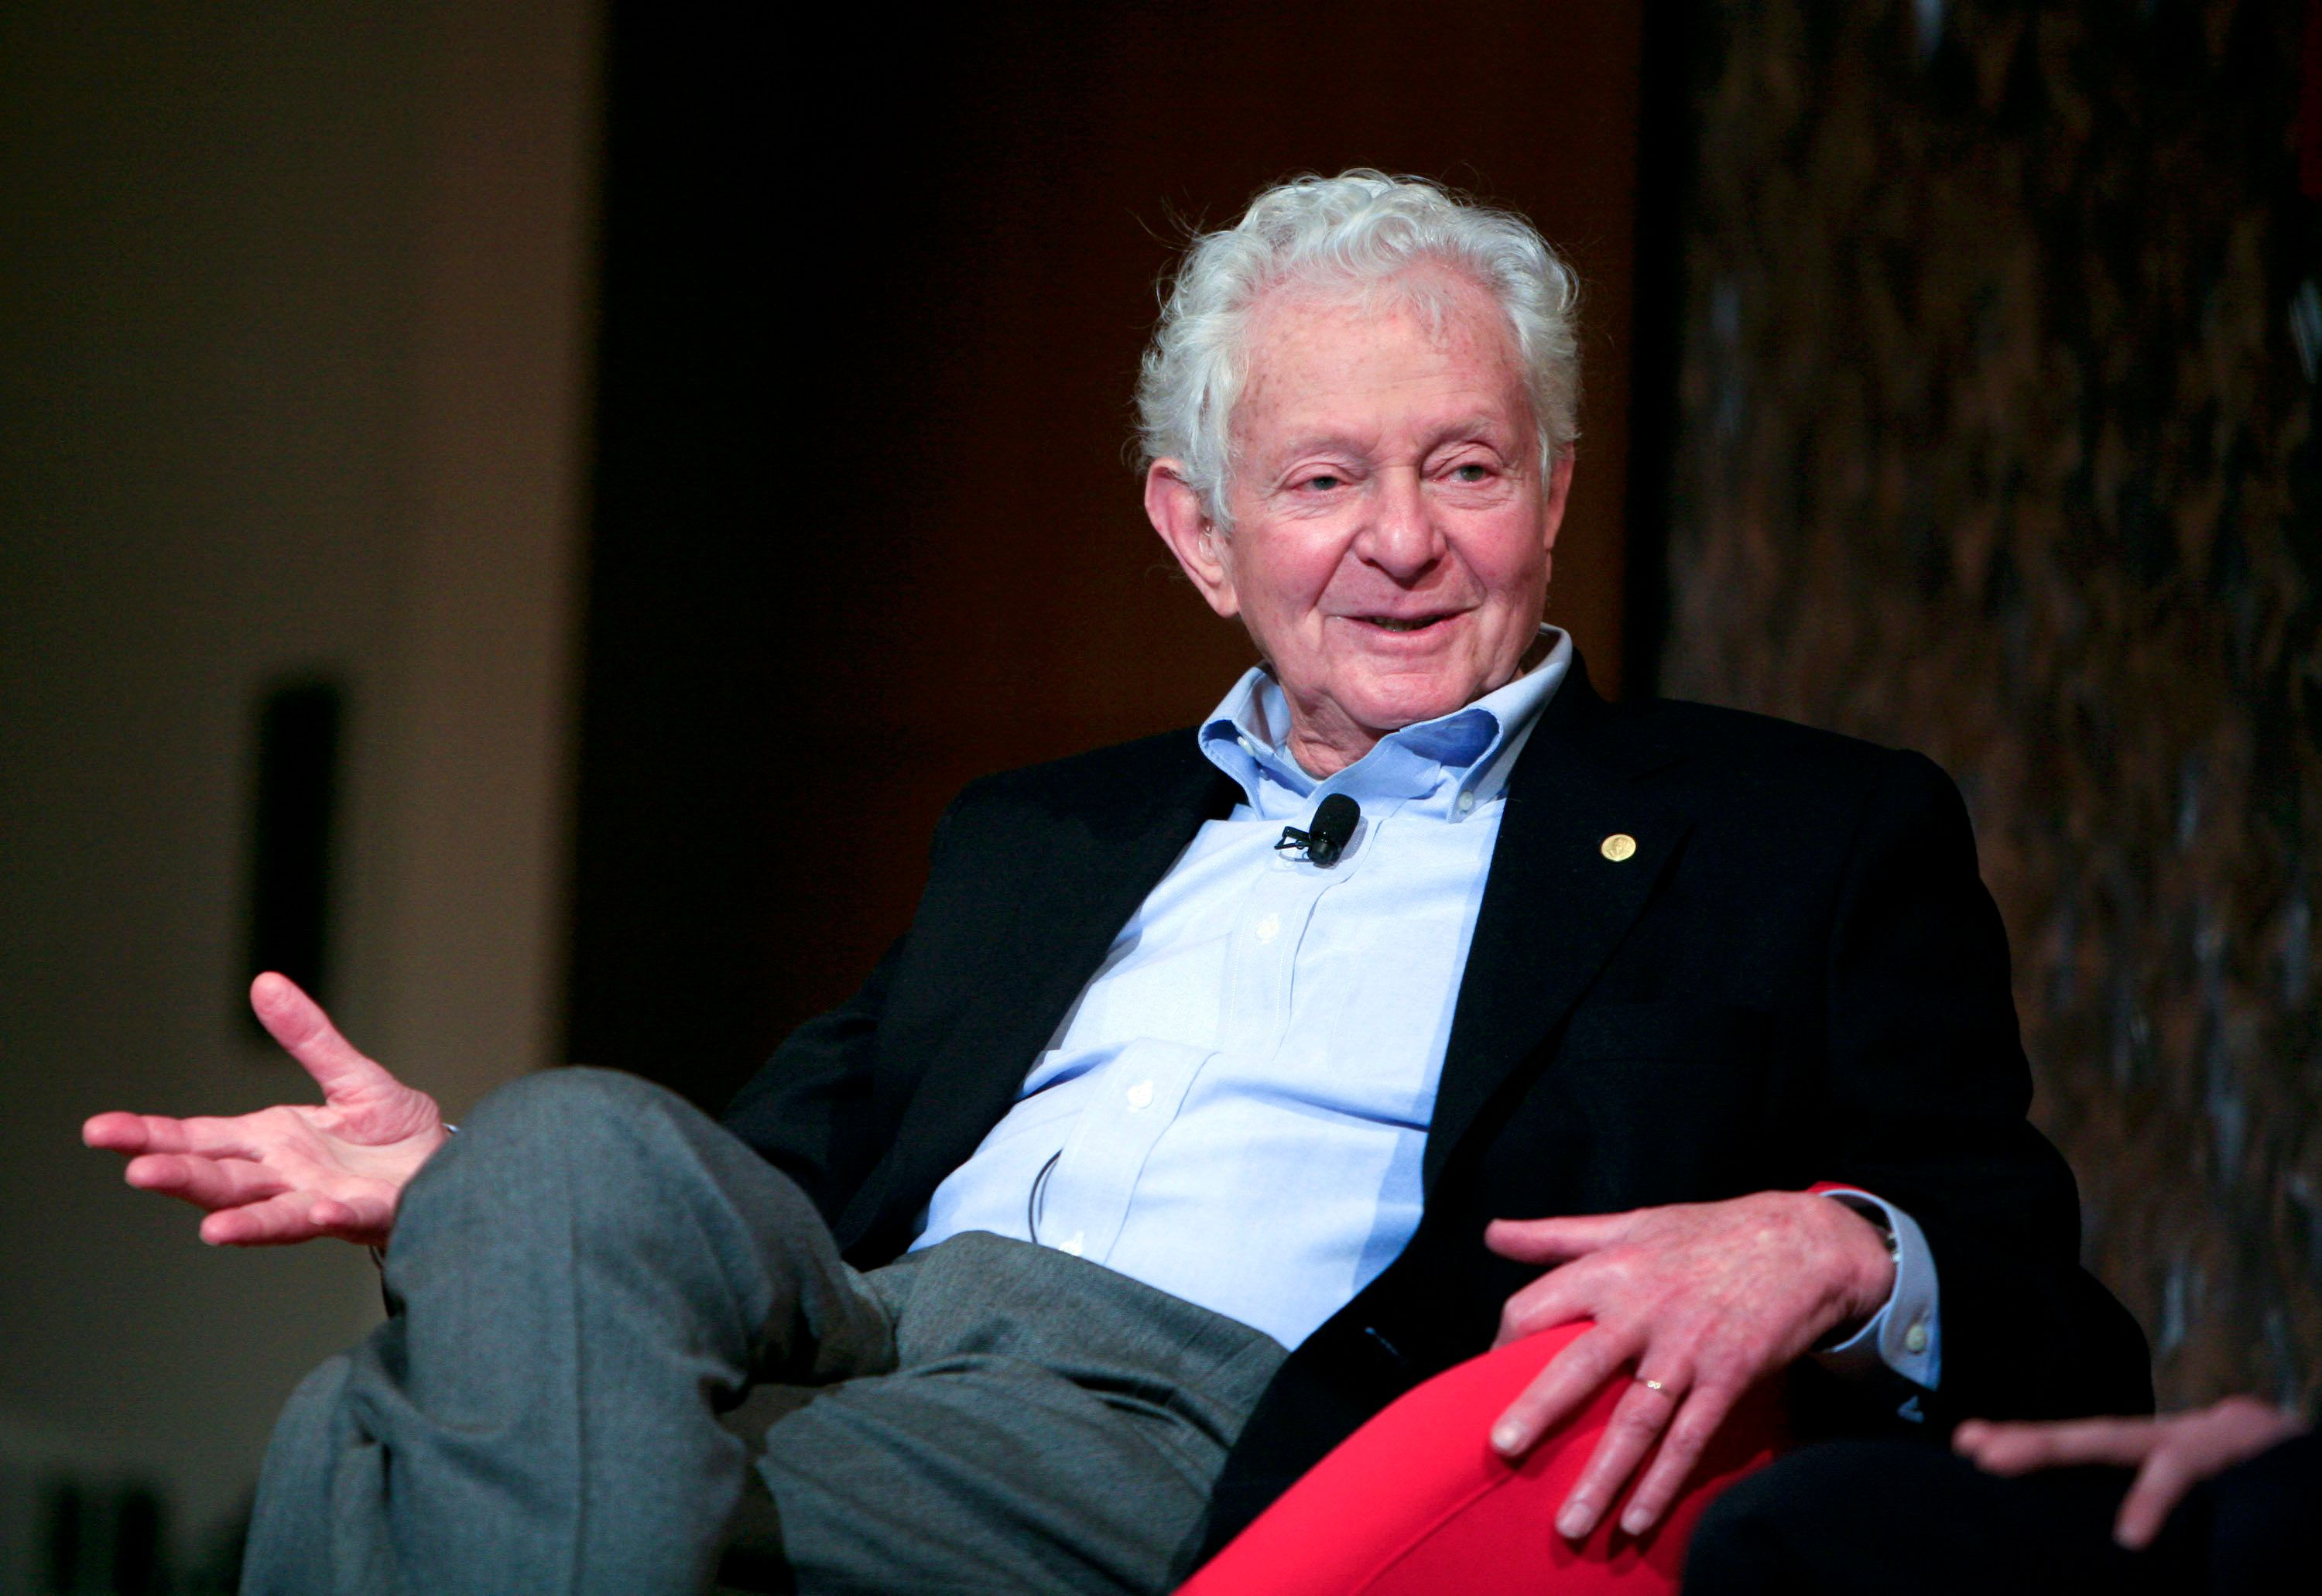 Nobel Prize winning physicist Leon Lederman speaks at the panel discussion 'Pioneers in Science' at the World Science Festiva